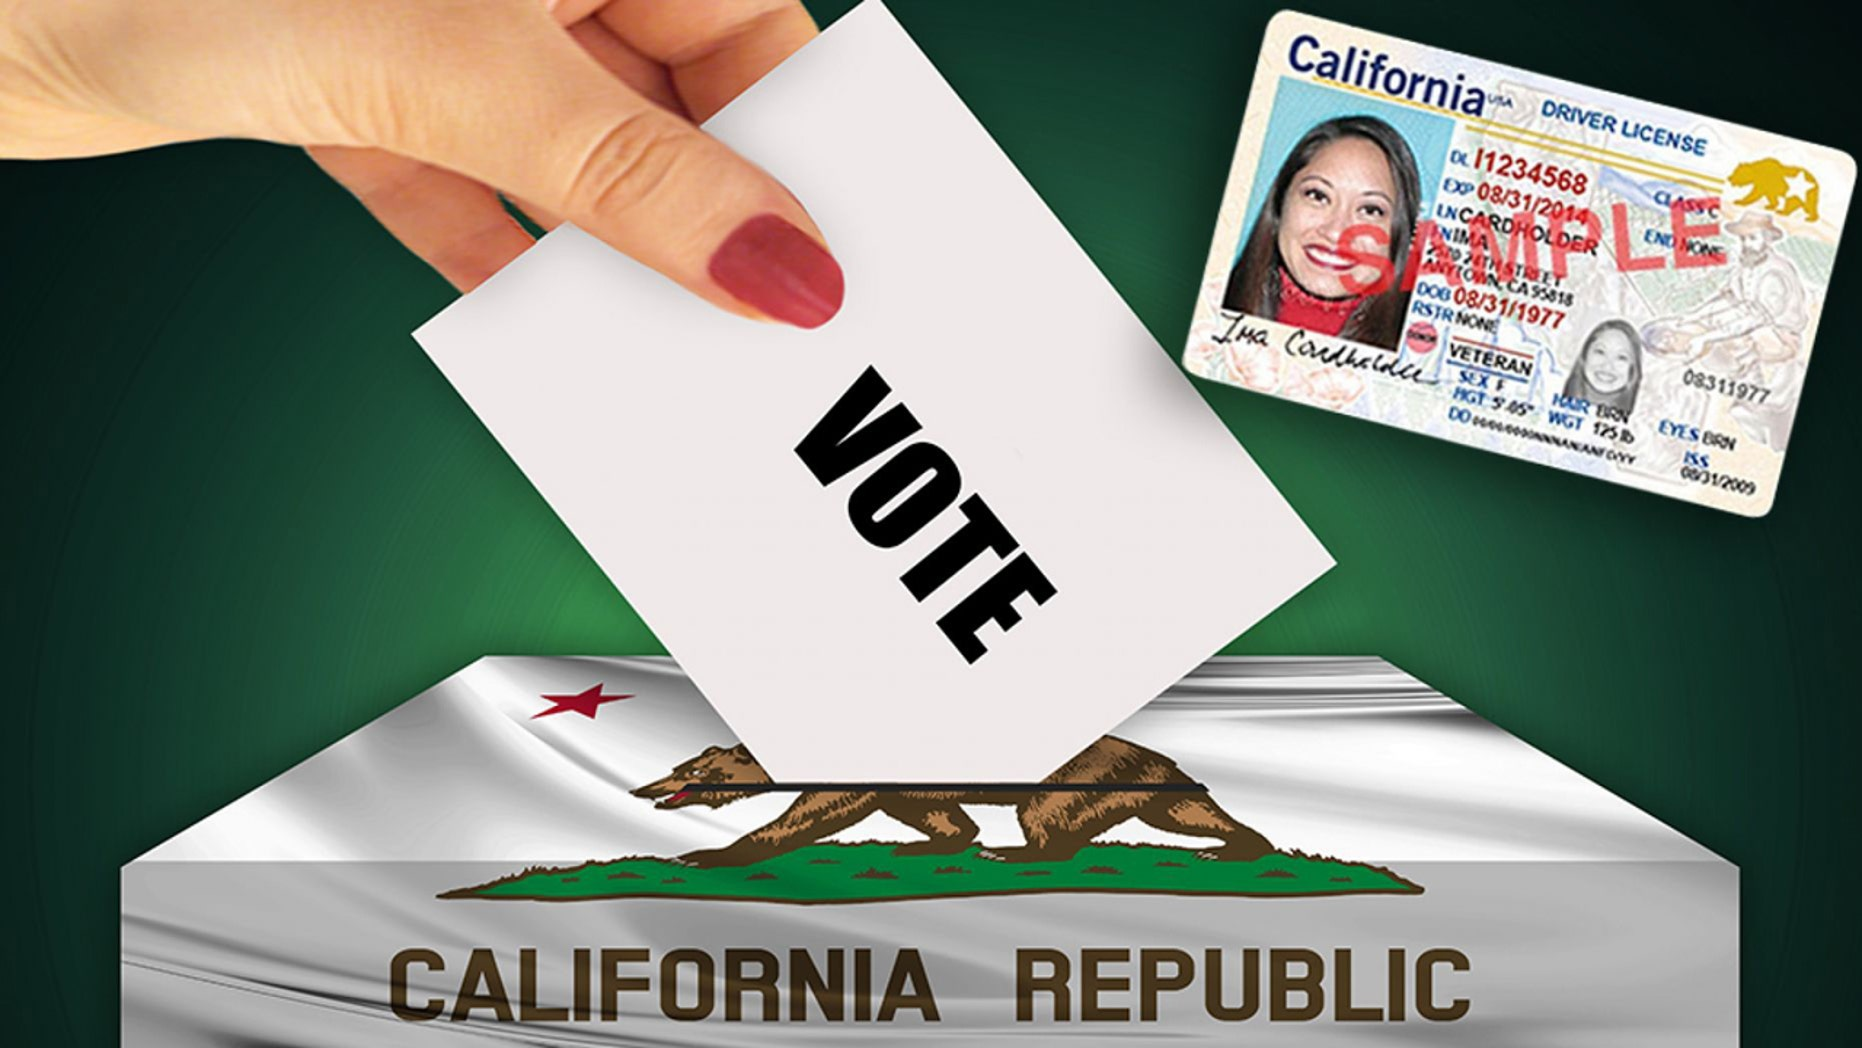 Alex Padilla, California's top elections official, said Tuesday he doesn't yet know if any of the roughly 1,500 people mistakenly registered to vote by the Department of Motor Vehciles cast ballots in the June primary.